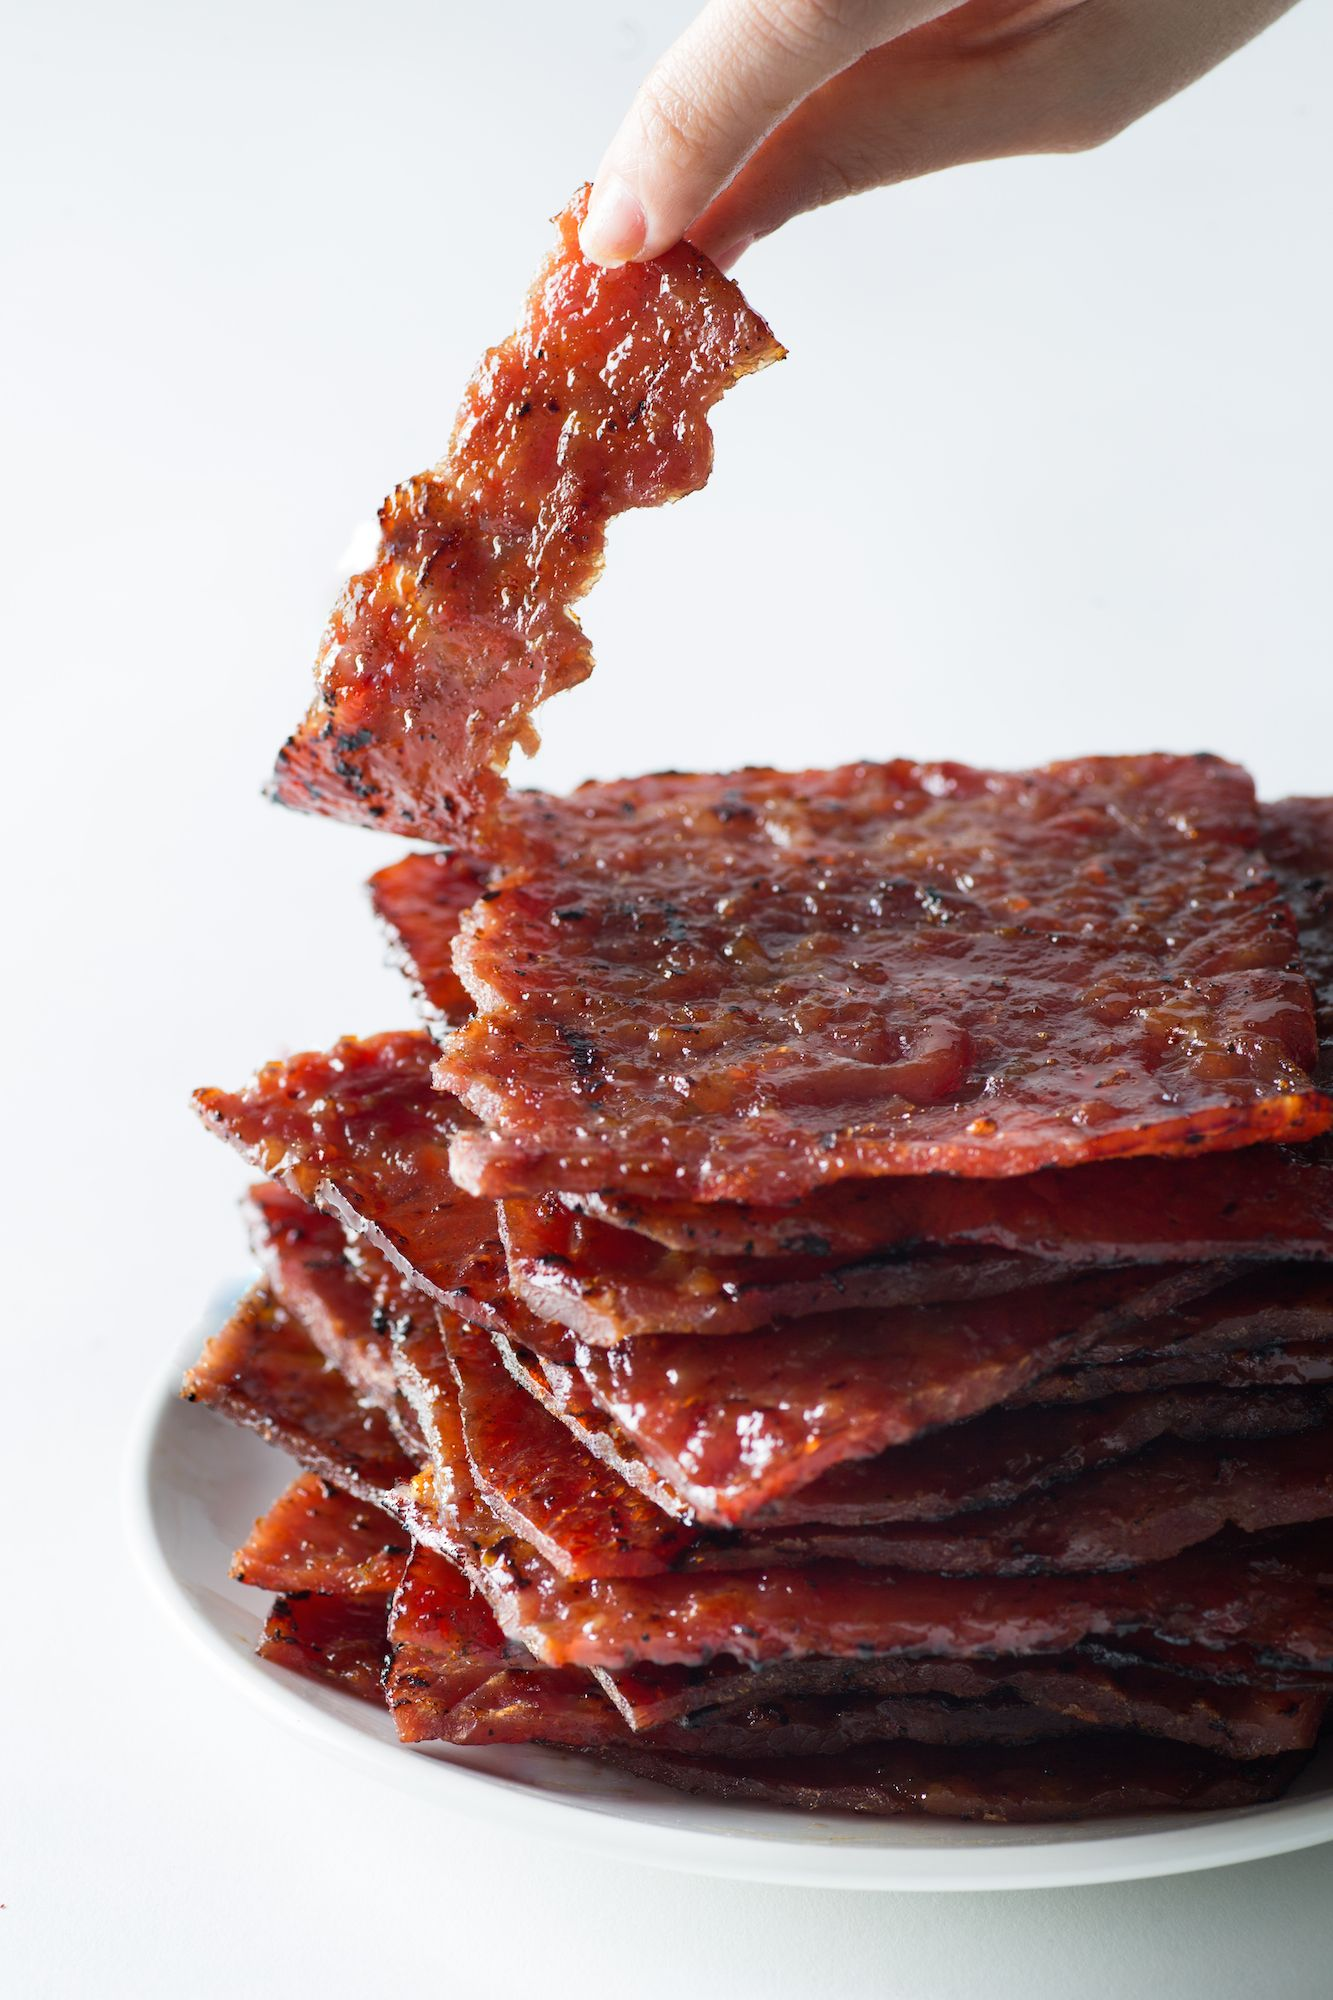 Had This Before Asian Pork Jerky Aka Bak Kwa Way Softer Juicier And More Aromatic Than Western Jerky R Food Pork Jerky Asian Pork Food